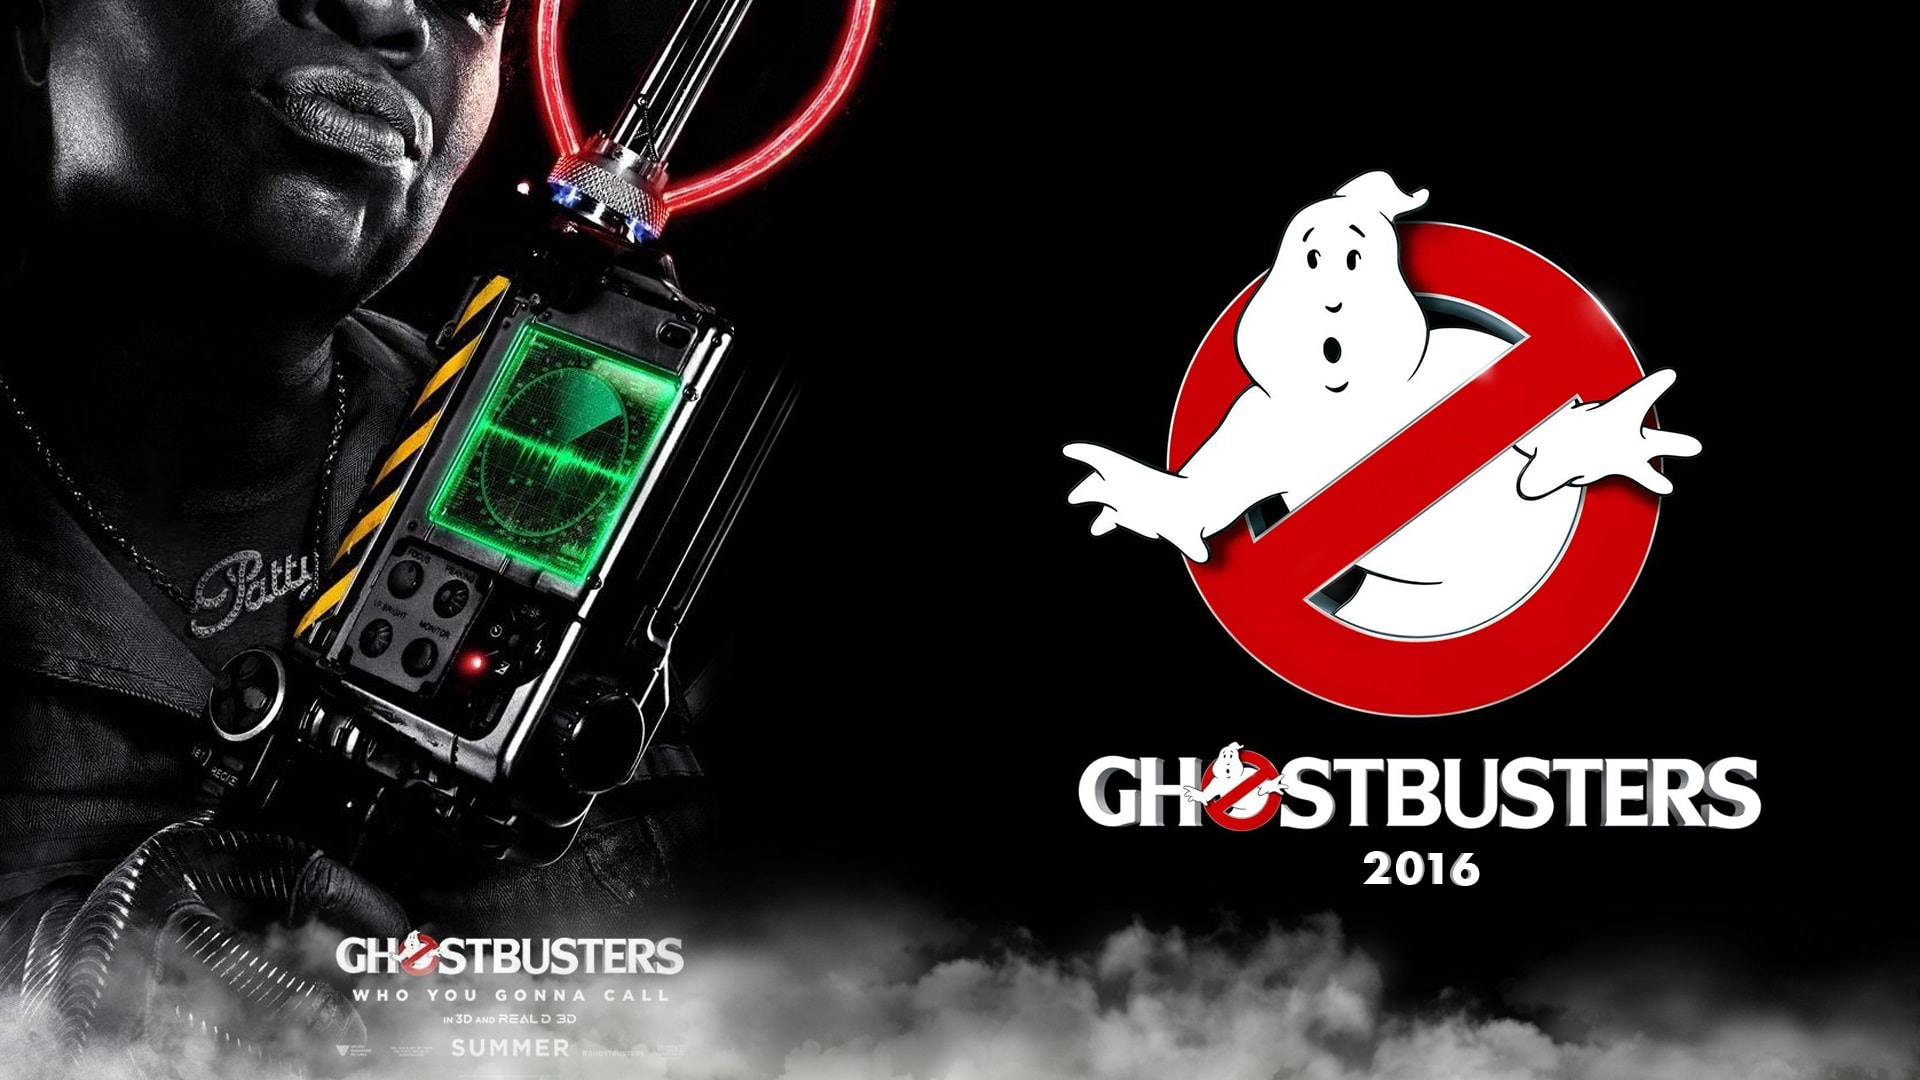 ghostbusters hd desktop wallpapers | 7wallpapers